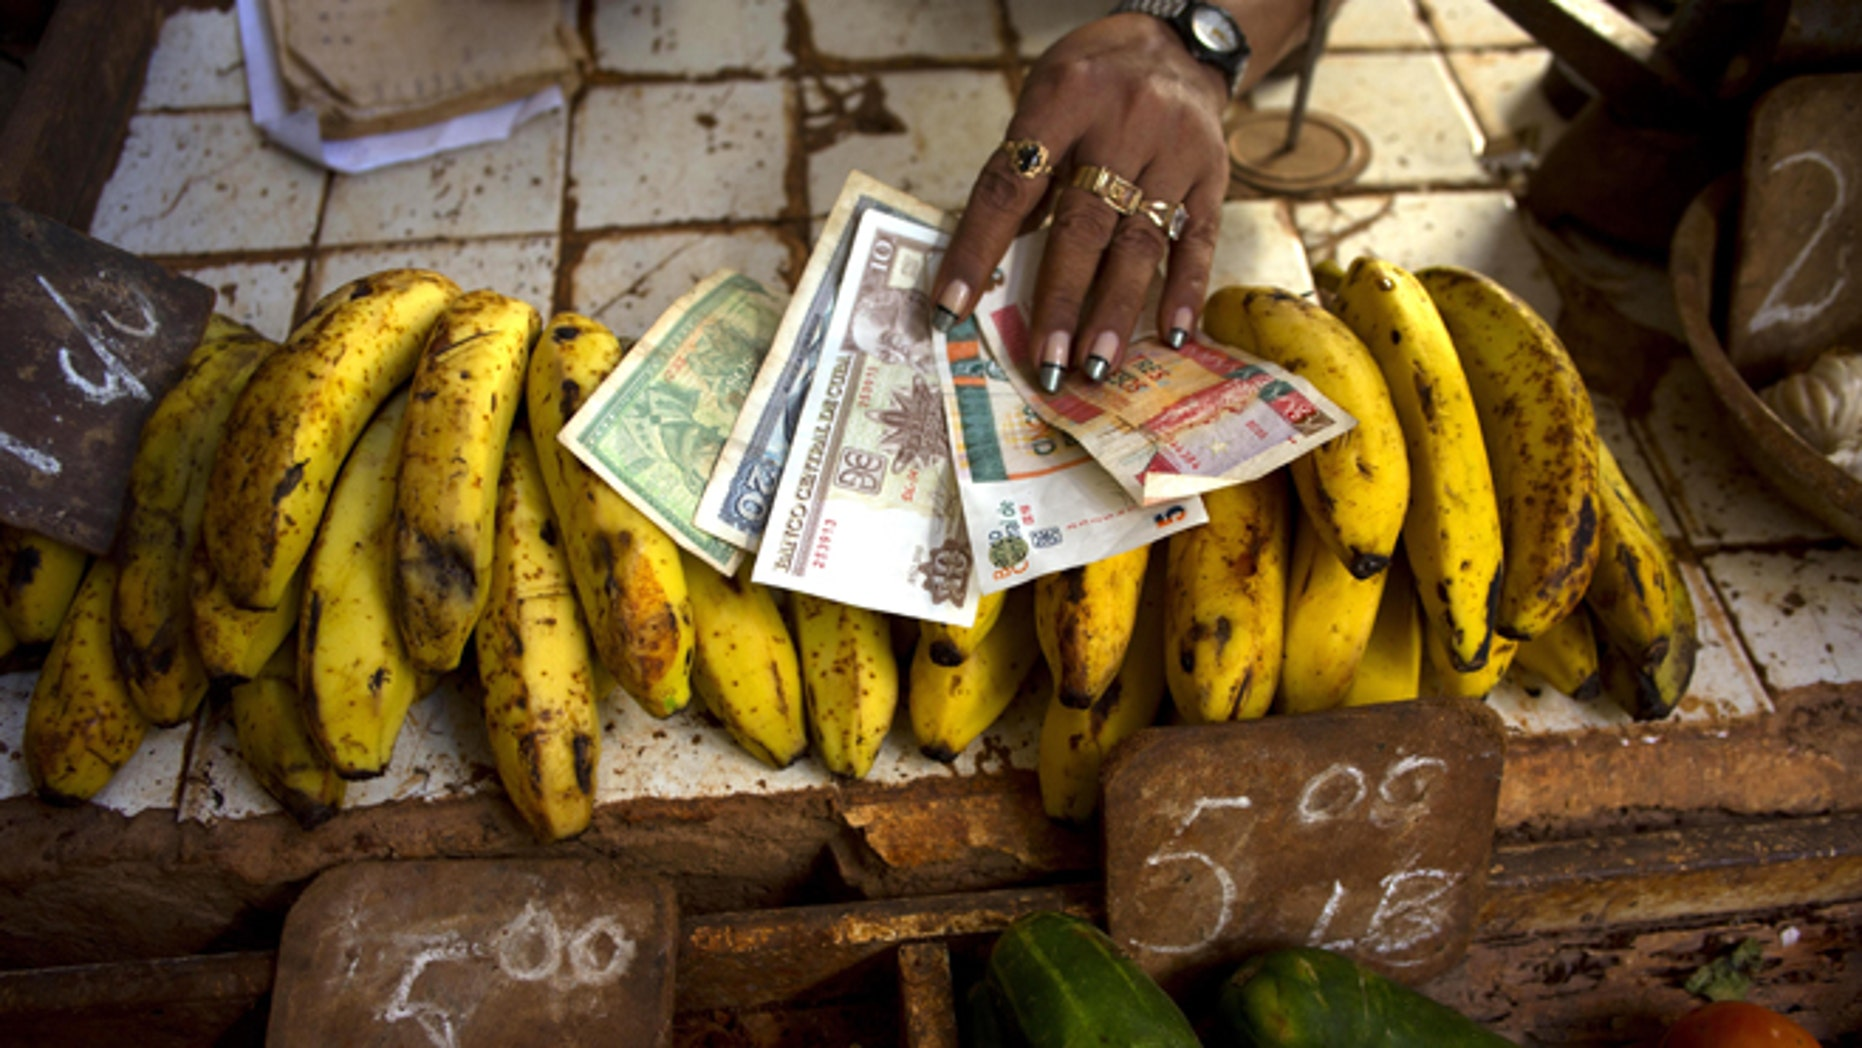 In this Aug. 30, 2013 photo, a food vendor spreads out convertible pesos, known as CUCs, the two bills on the right, and regular Cuban pesos at her stand in a vegetable market in Havana, Cuba.  Cuba is the only country in the world that mints two national currencies, a bizarre system that even President Raul Castro acknowledges is hamstringing the island's socialist economy and must be scrapped.(AP Photo/Ramon Espinosa)